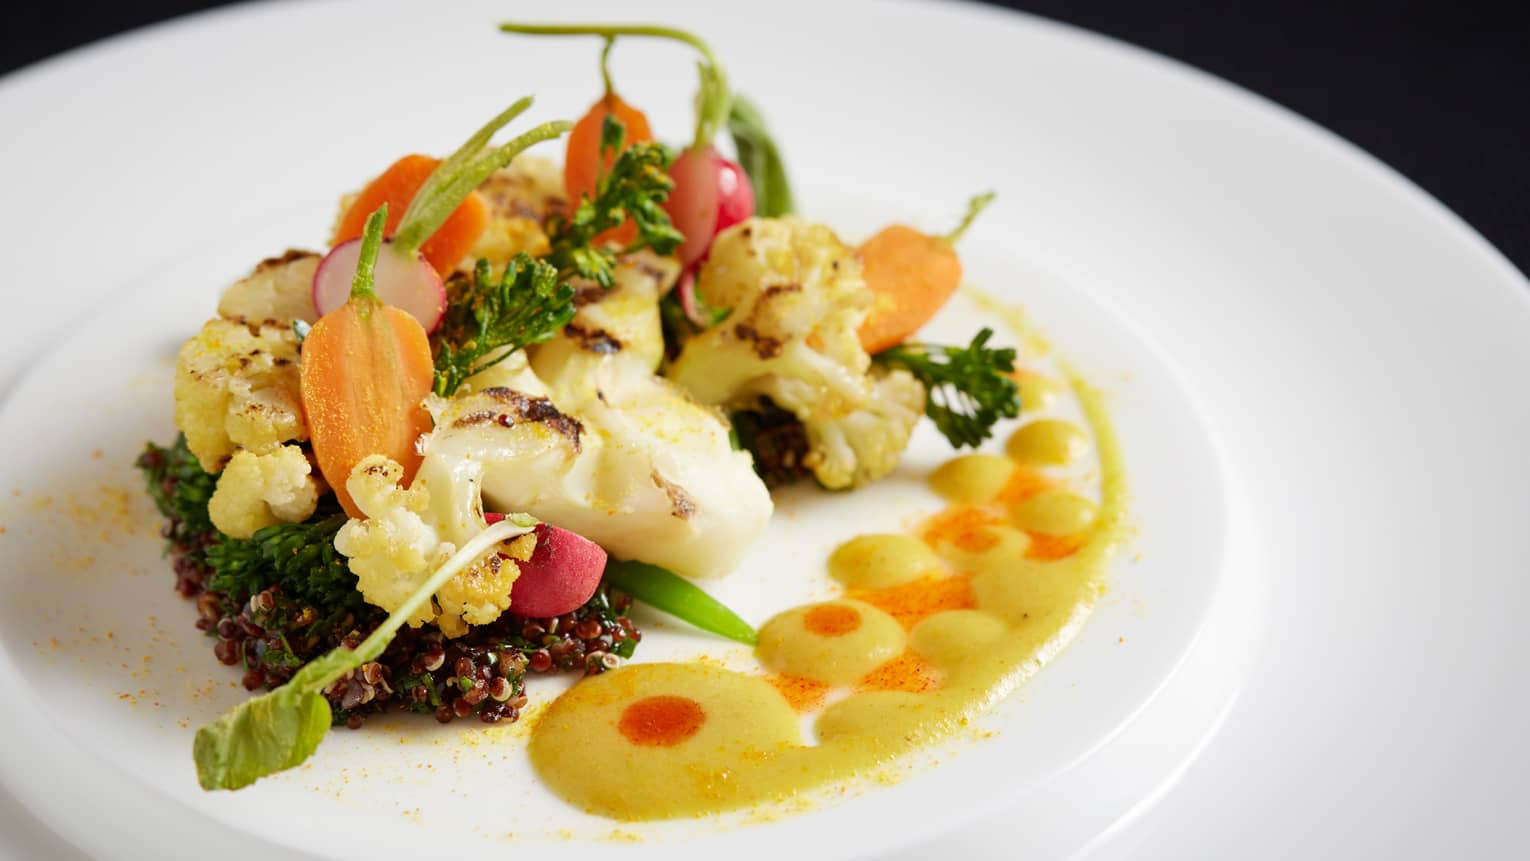 The Garden cauliflower steak with black walnut quinoa and fragrant pear curry emulsion, on plate